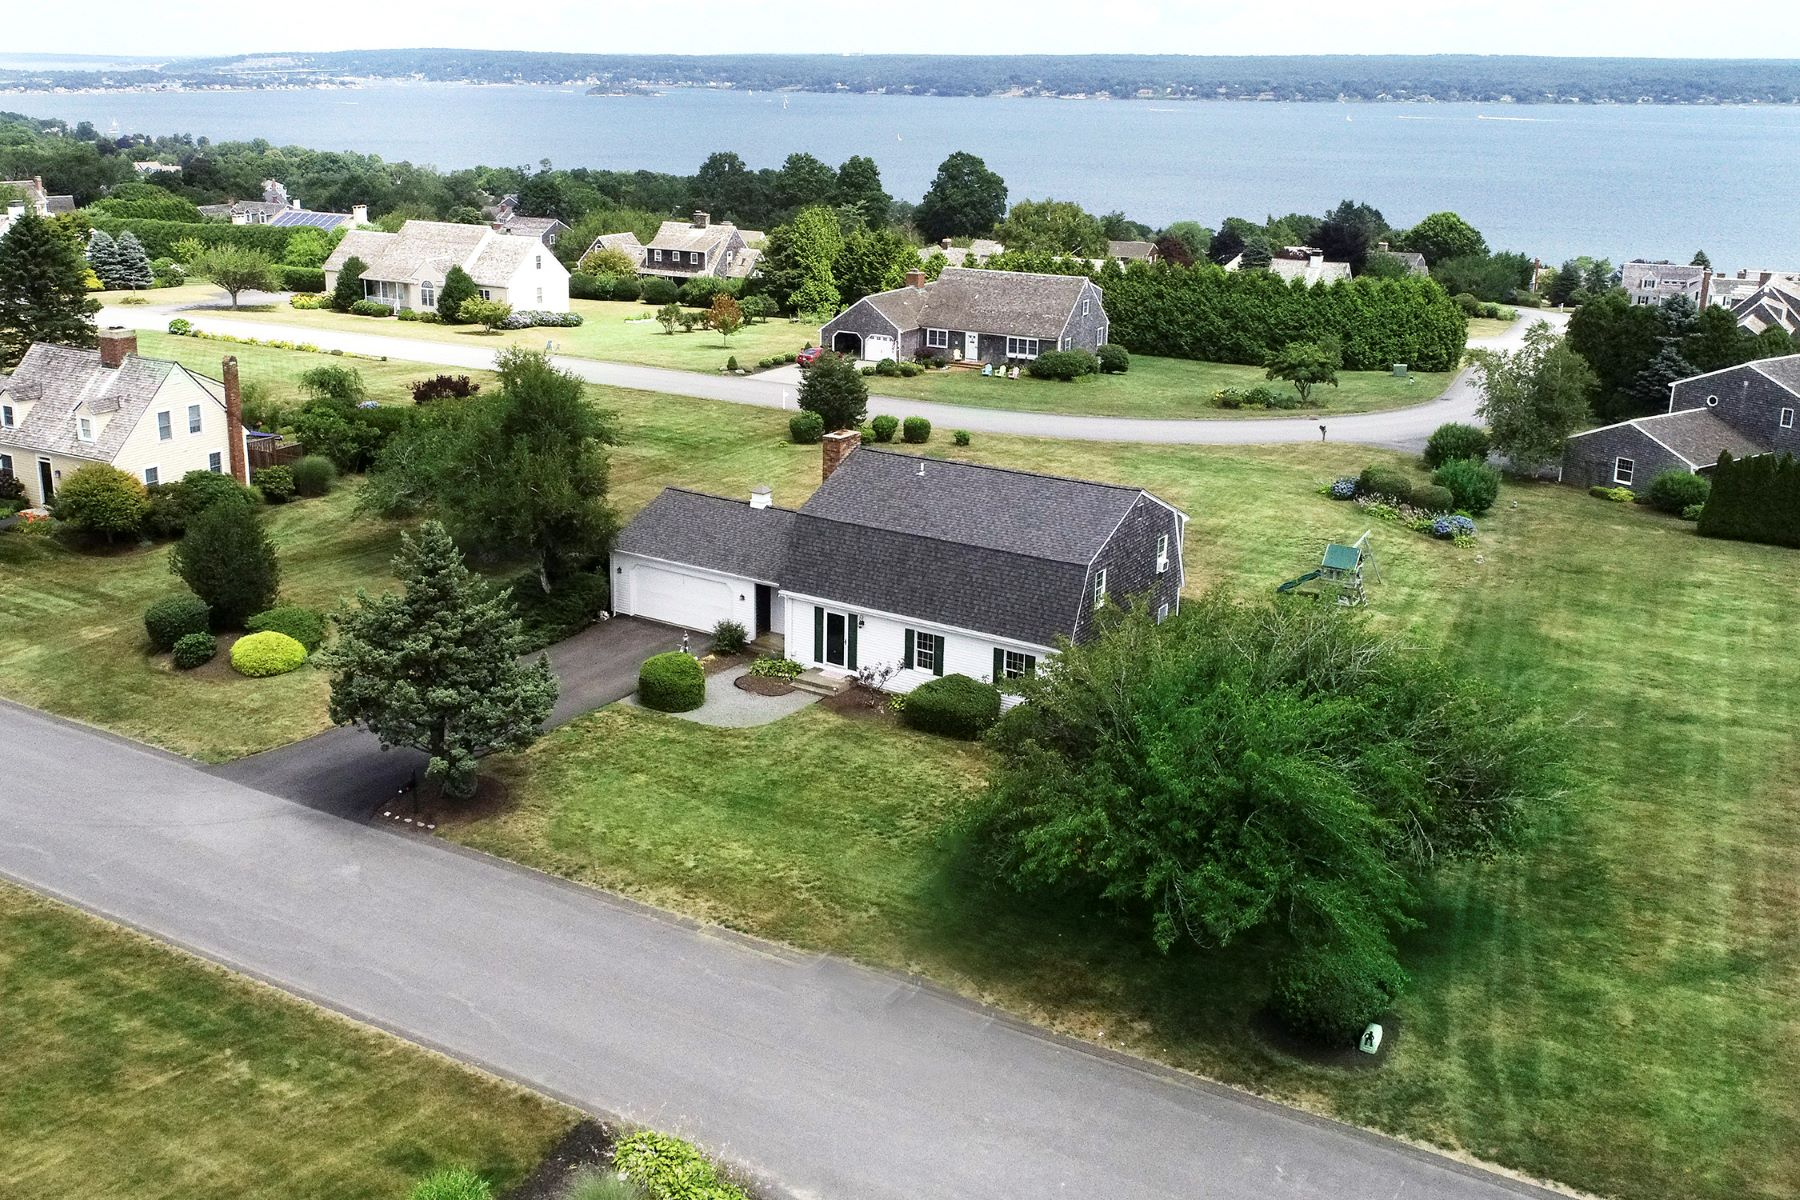 Single Family Homes for Sale at Sea Meadow Farm 34 Caiger Lane Portsmouth, Rhode Island 02871 United States